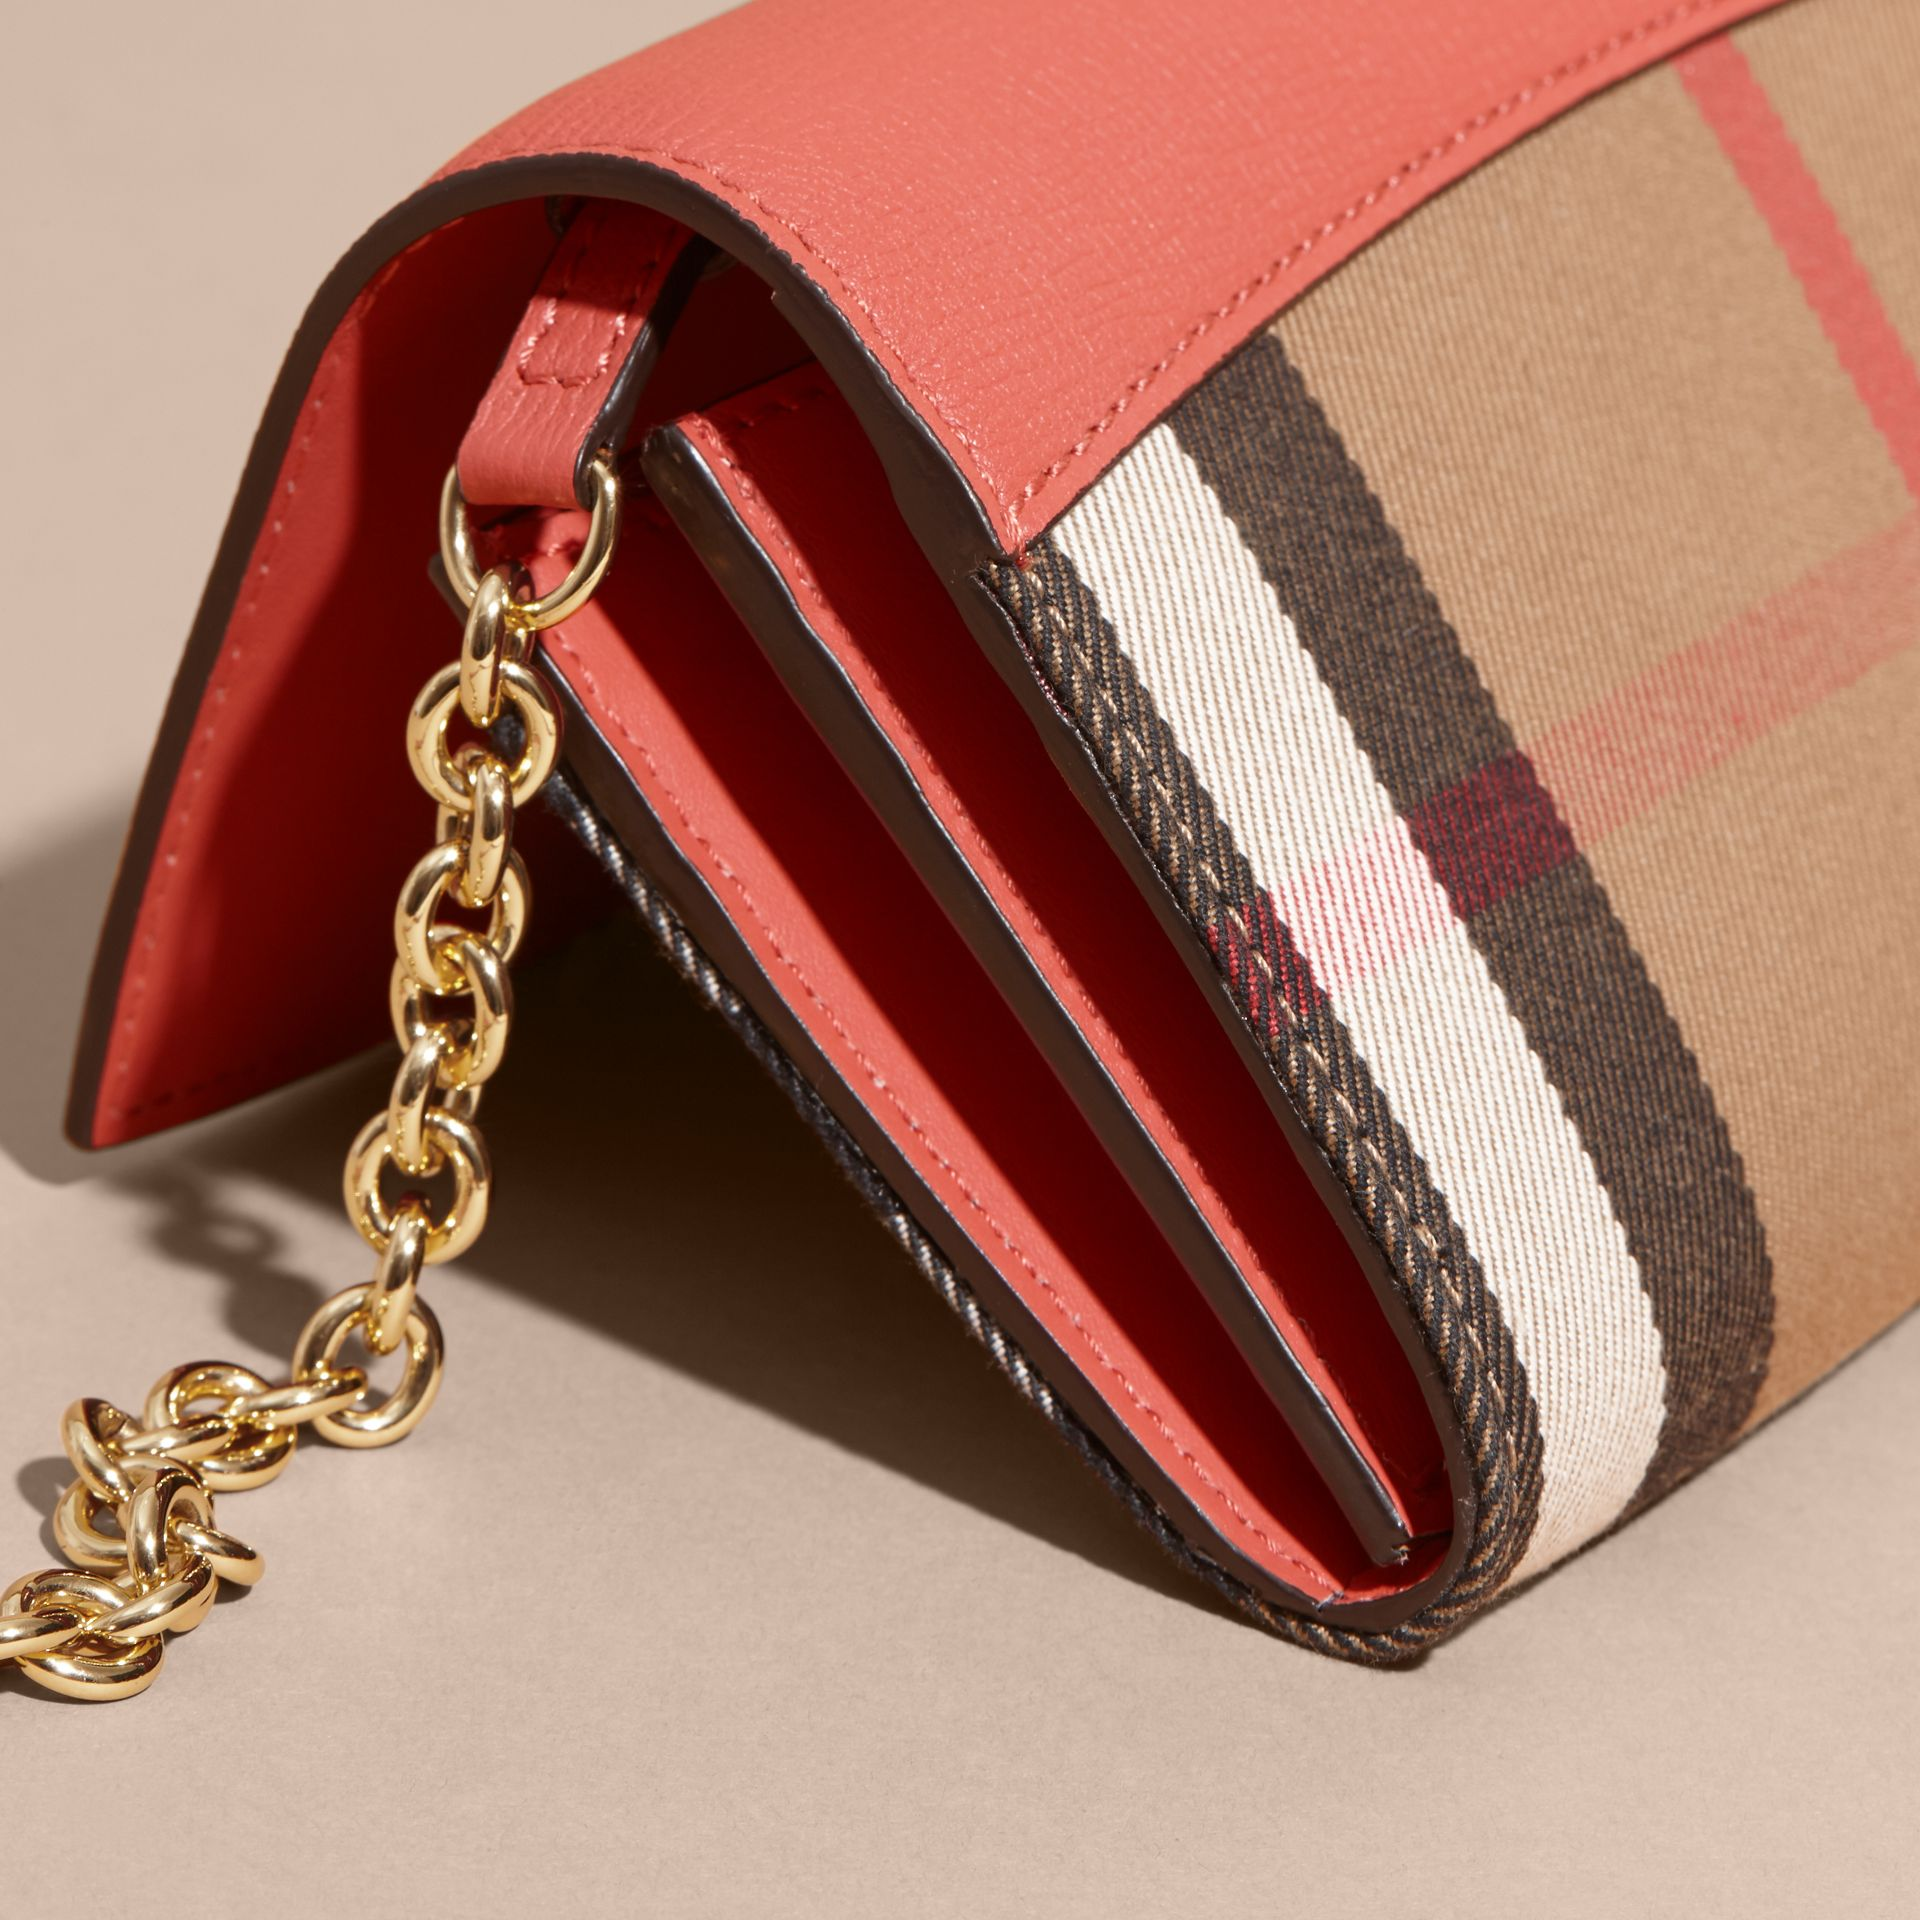 House Check and Leather Wallet with Chain in Cinnamon Red - Women | Burberry - gallery image 7